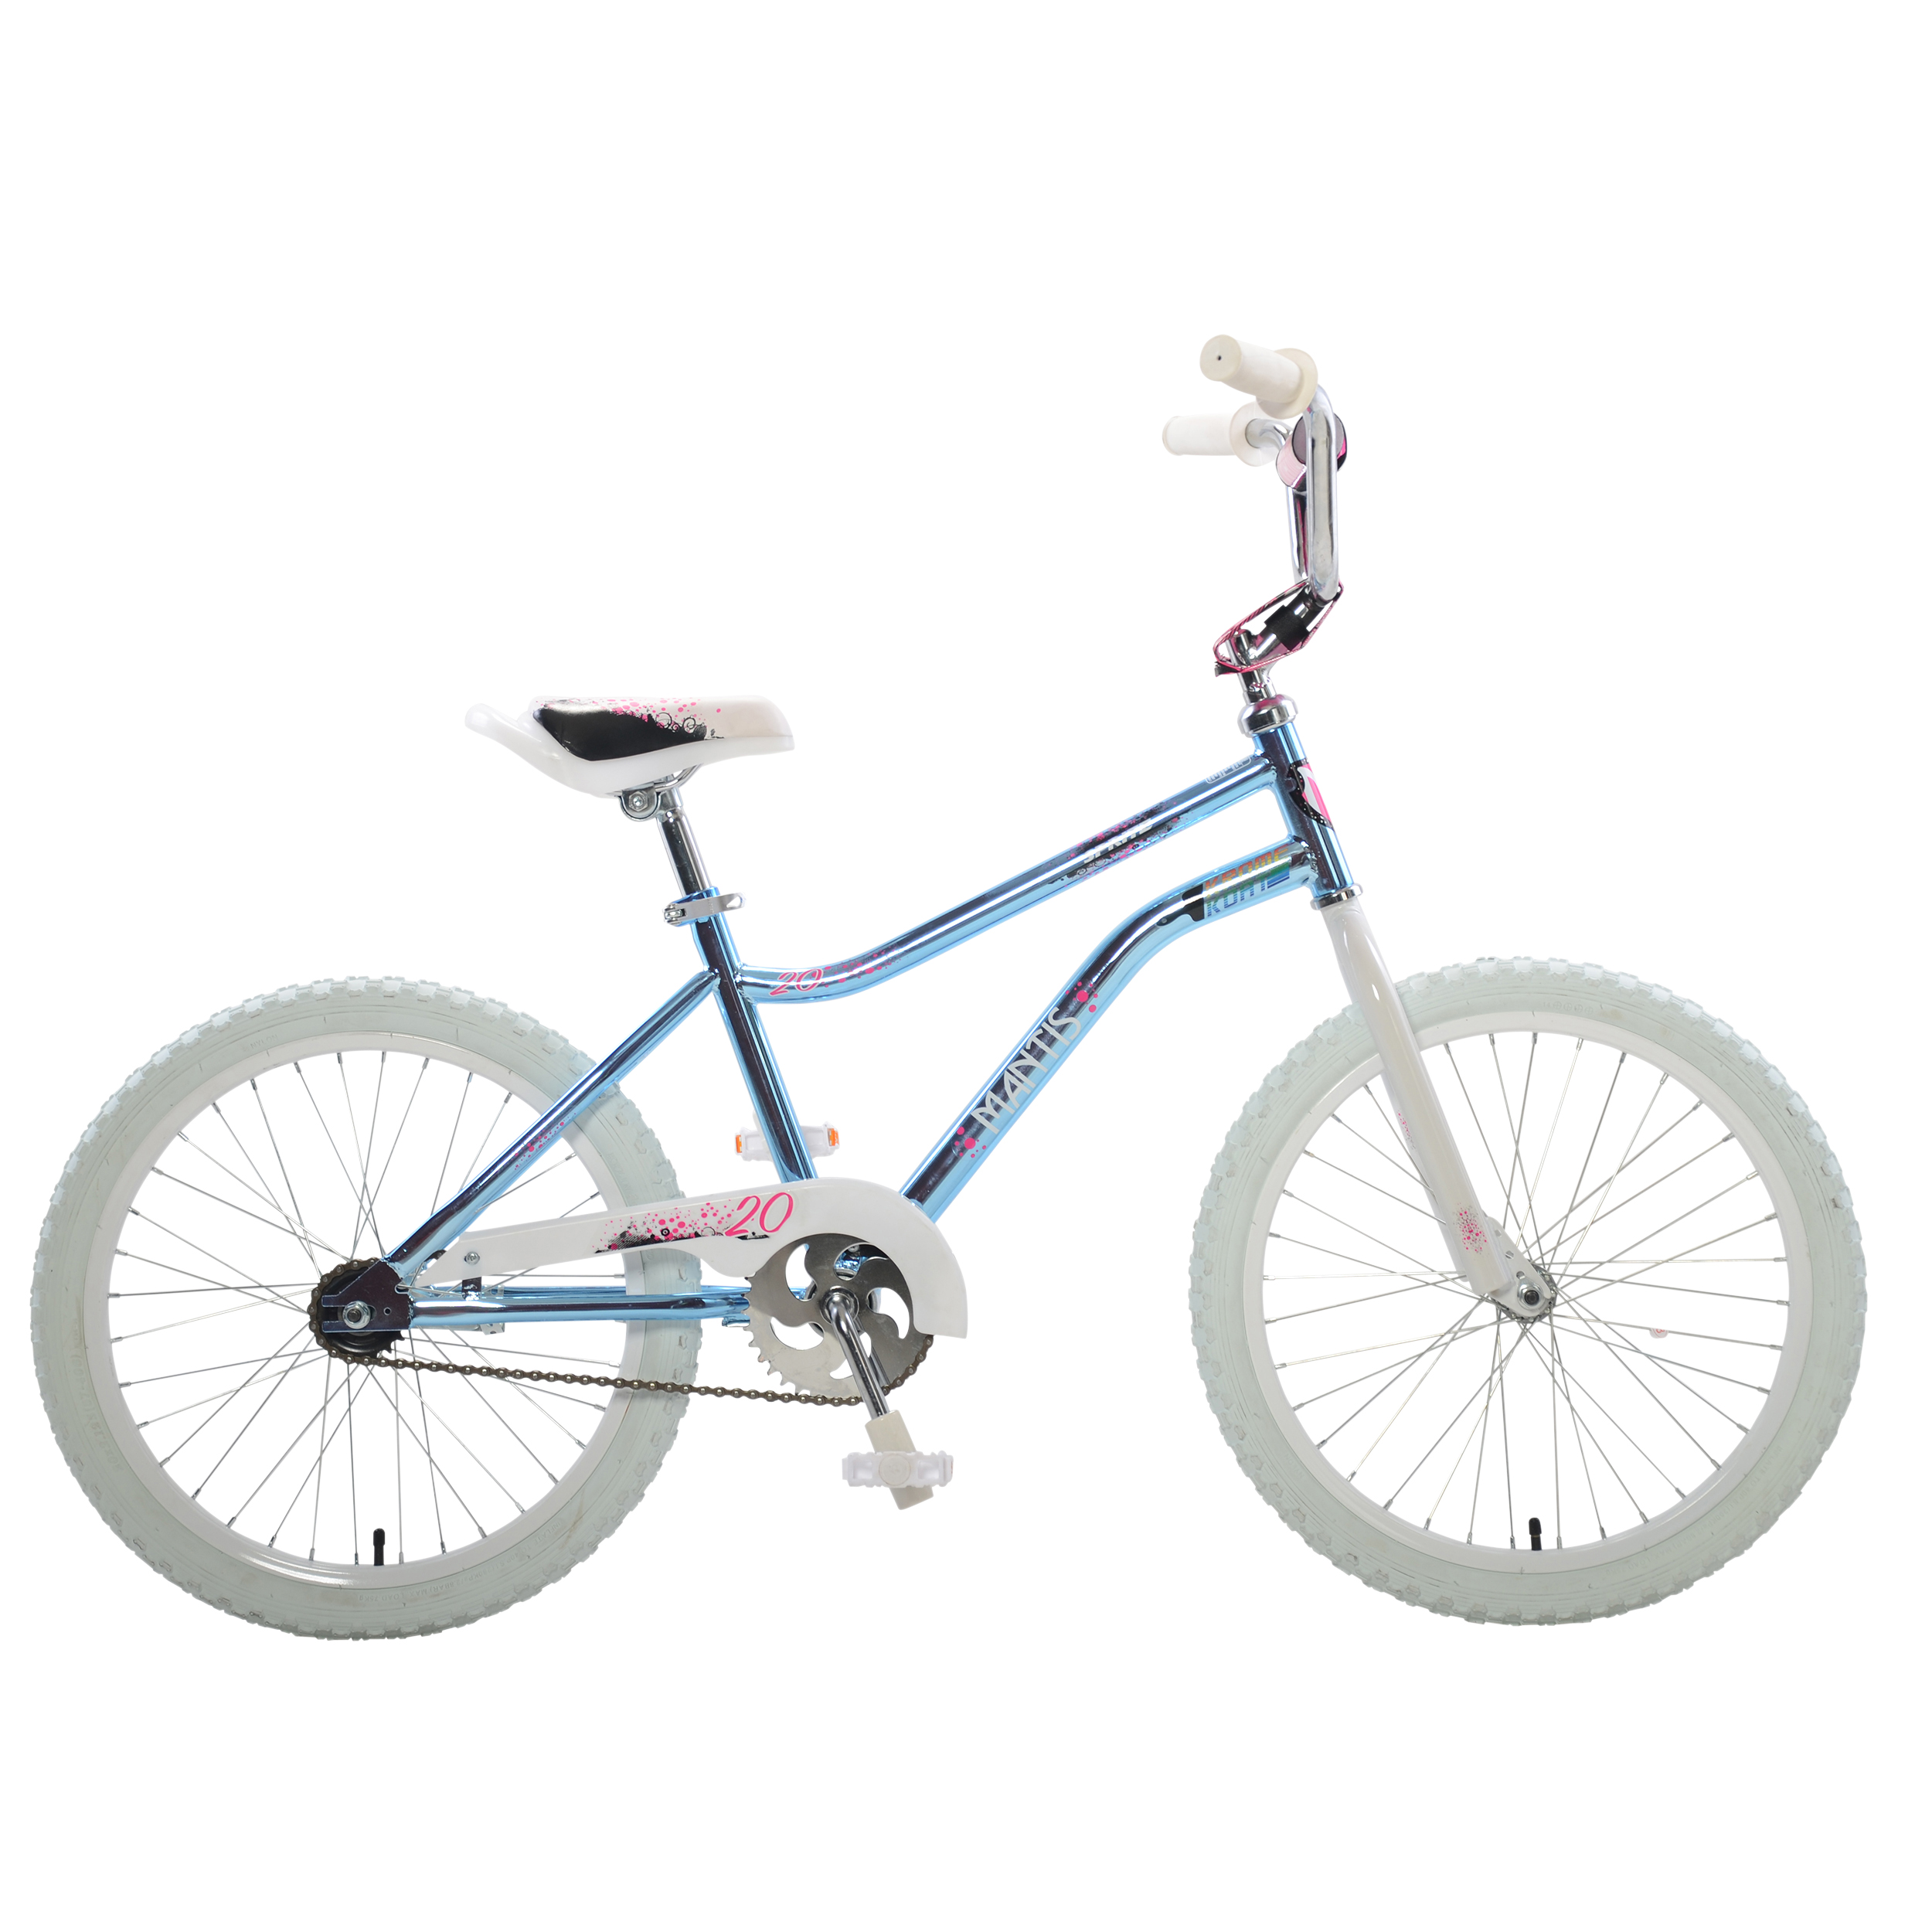 Spritz White Ready2Roll 16 inch Kids Bicycle